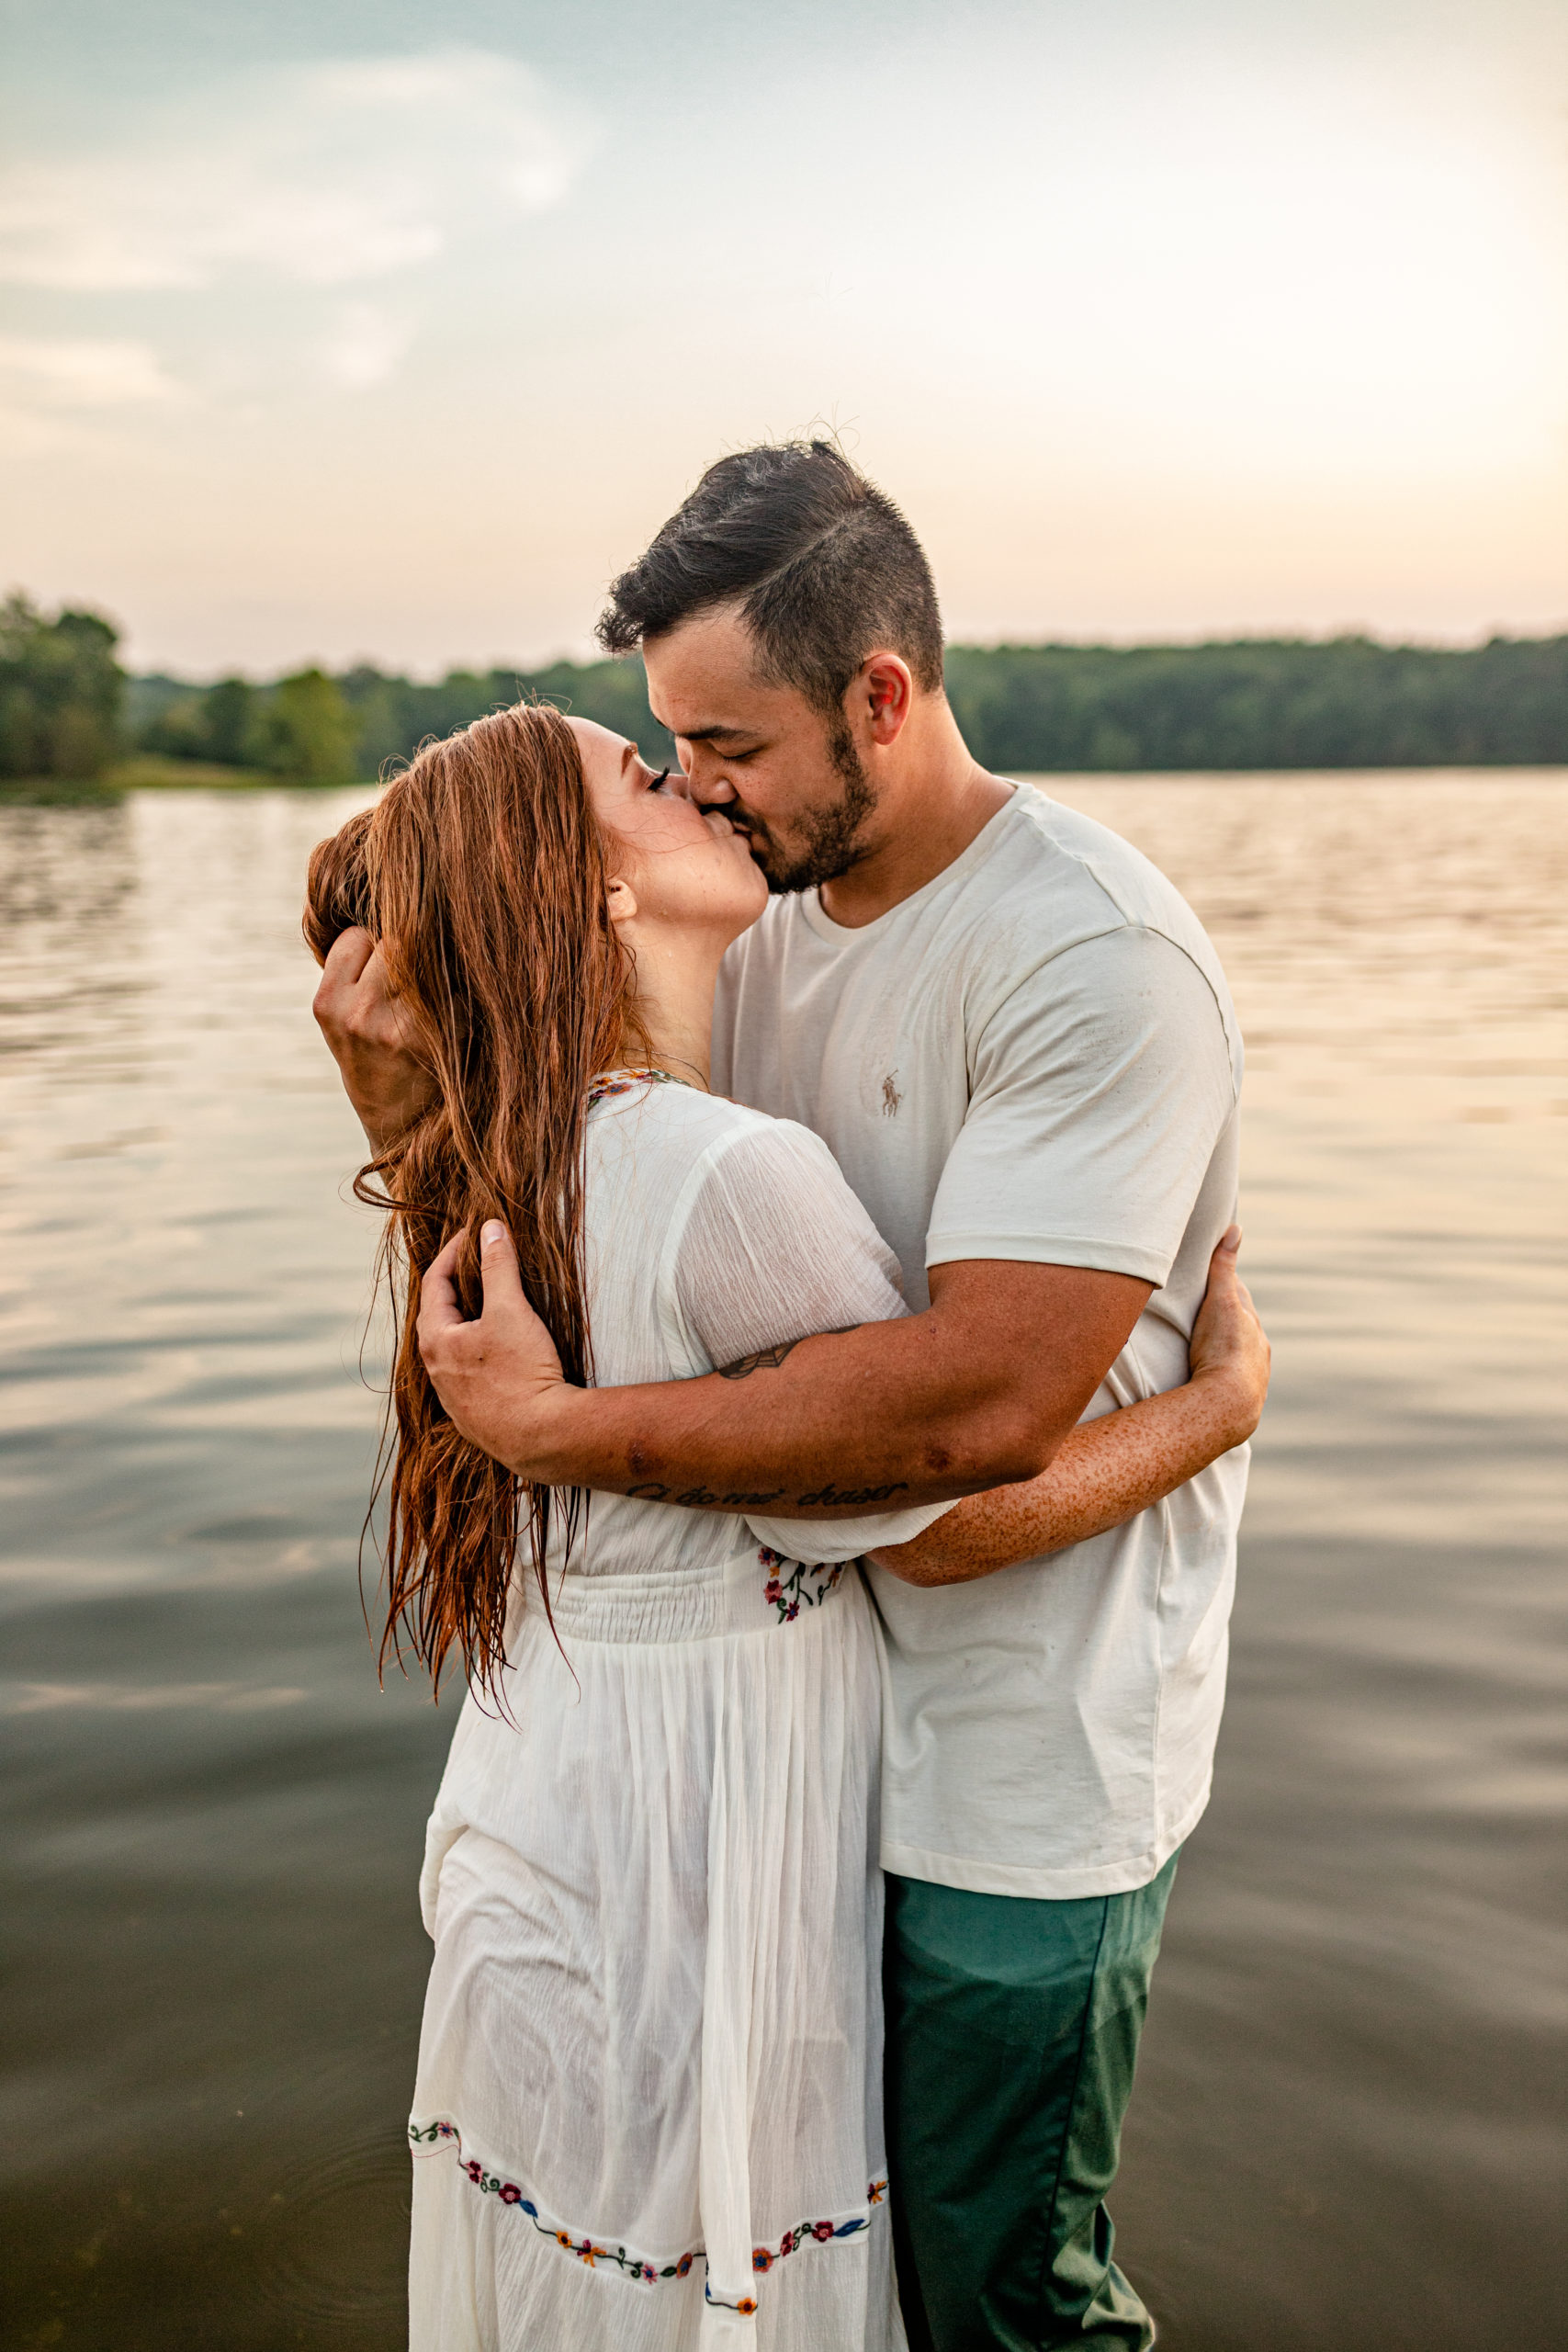 hot lakeside engagement session, romantic lake session, sunset lake, couple in water, Boulder Creek Photography